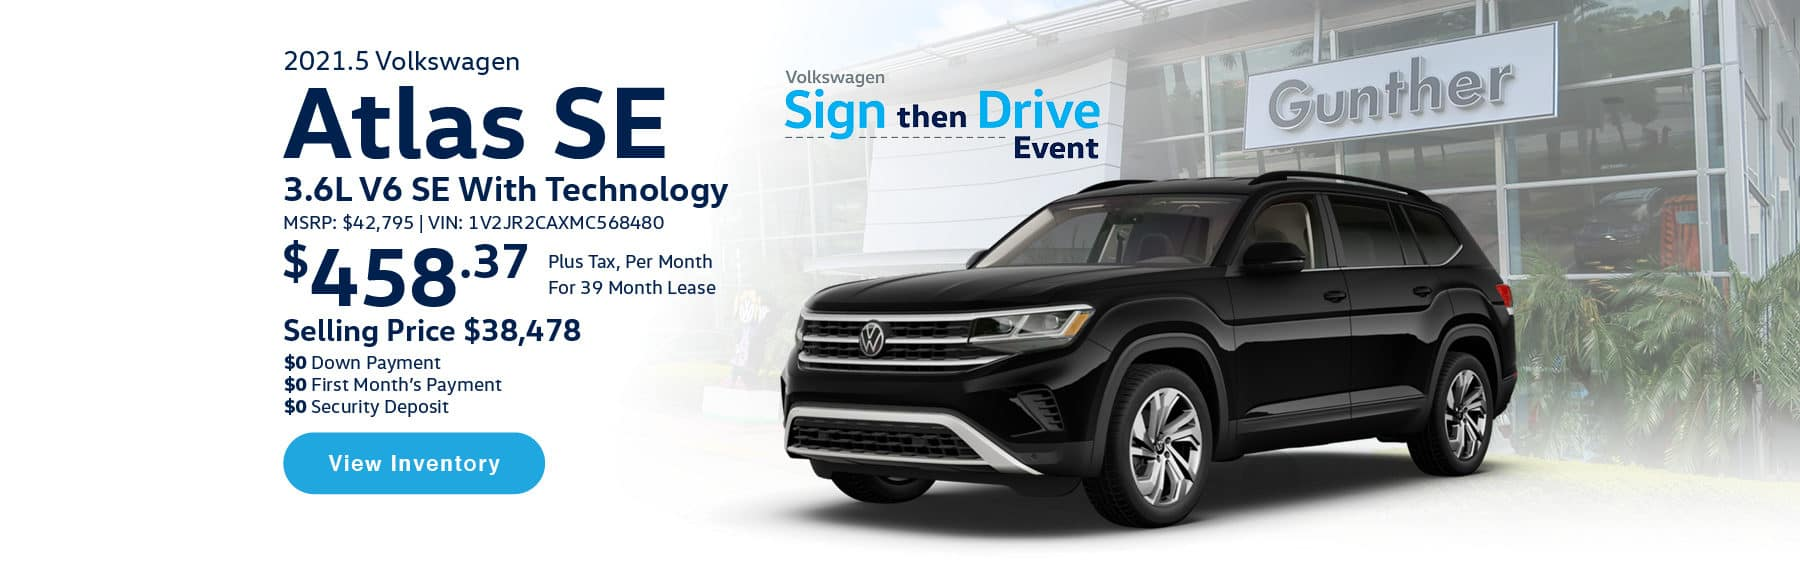 Lease the 2021.5 Atlas 3.6L V6 SE w/Technology for $458.37 per month, plus tax for 39 months. Selling price is $38,478. $0 Down Payment, $0 First Month's Payment, $0 Security Deposit. $42,795 MSRP. Vin #: 1V2JR2CAXMC568480. Click or tap here to visit our inventory.